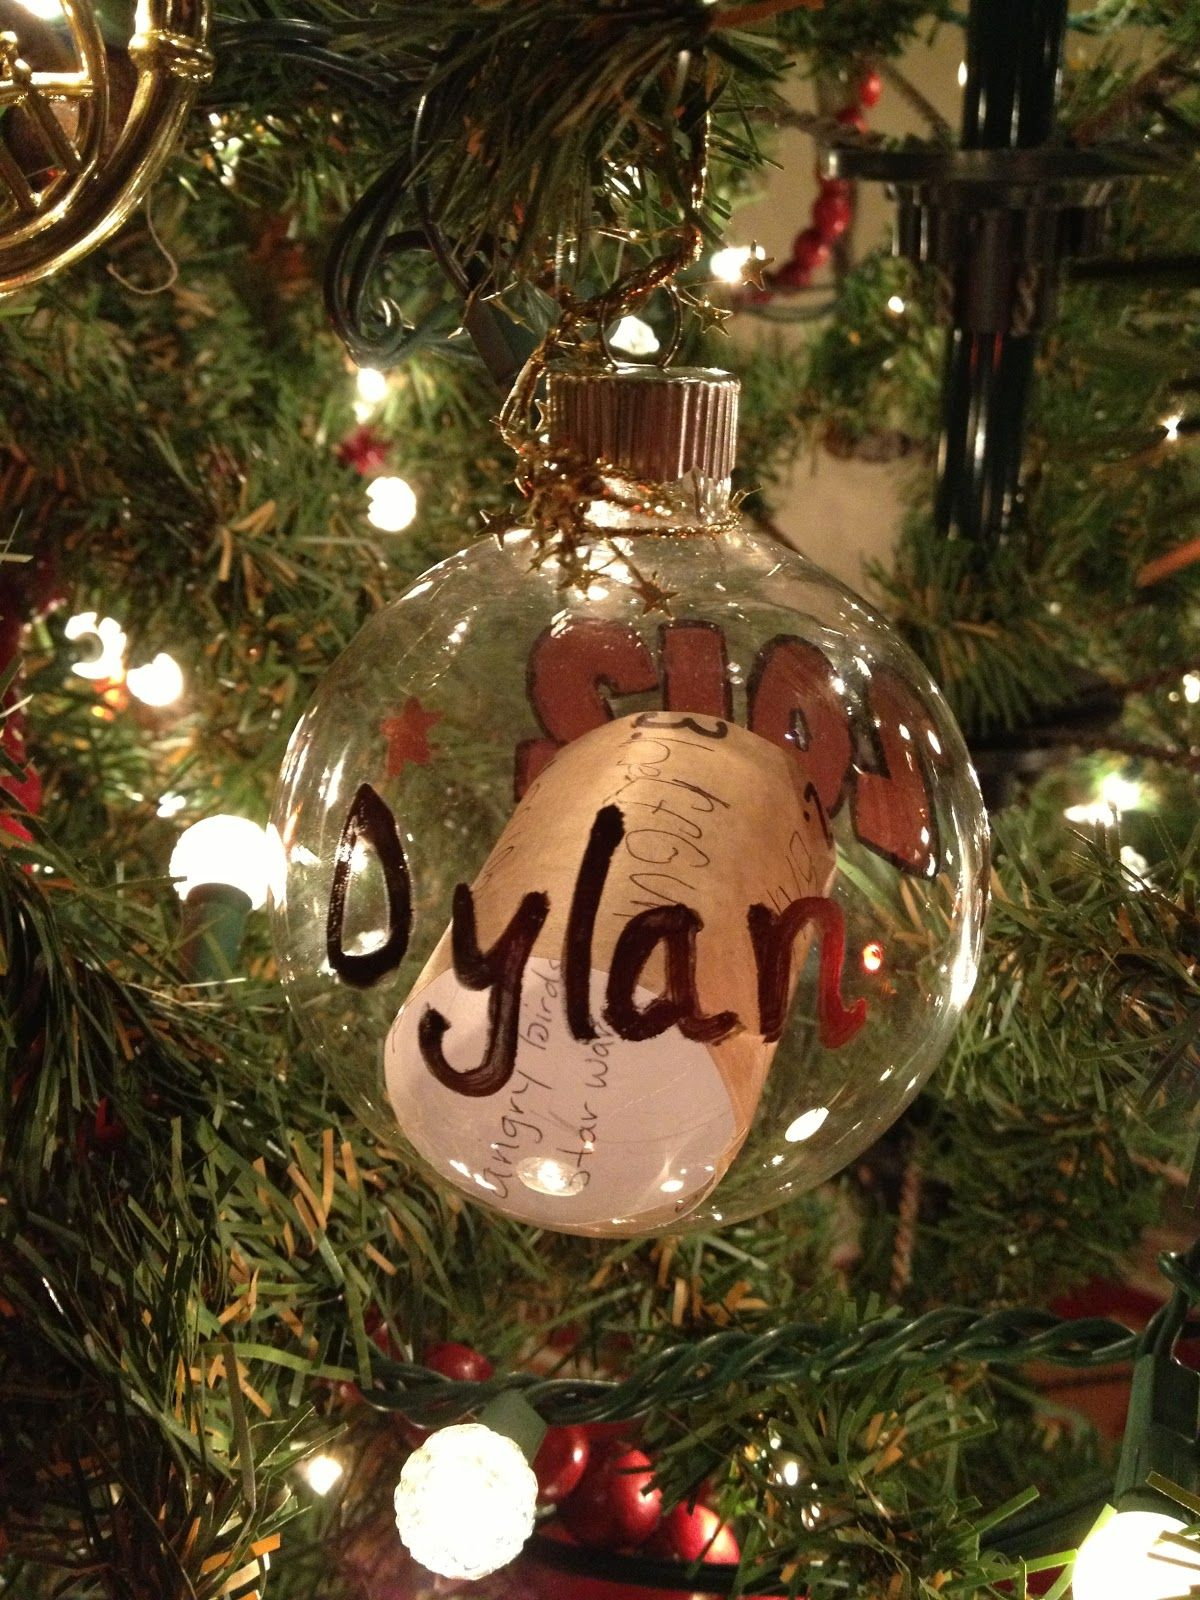 Wish List Ornaments A New Holiday Tradition Have Your Kids Write